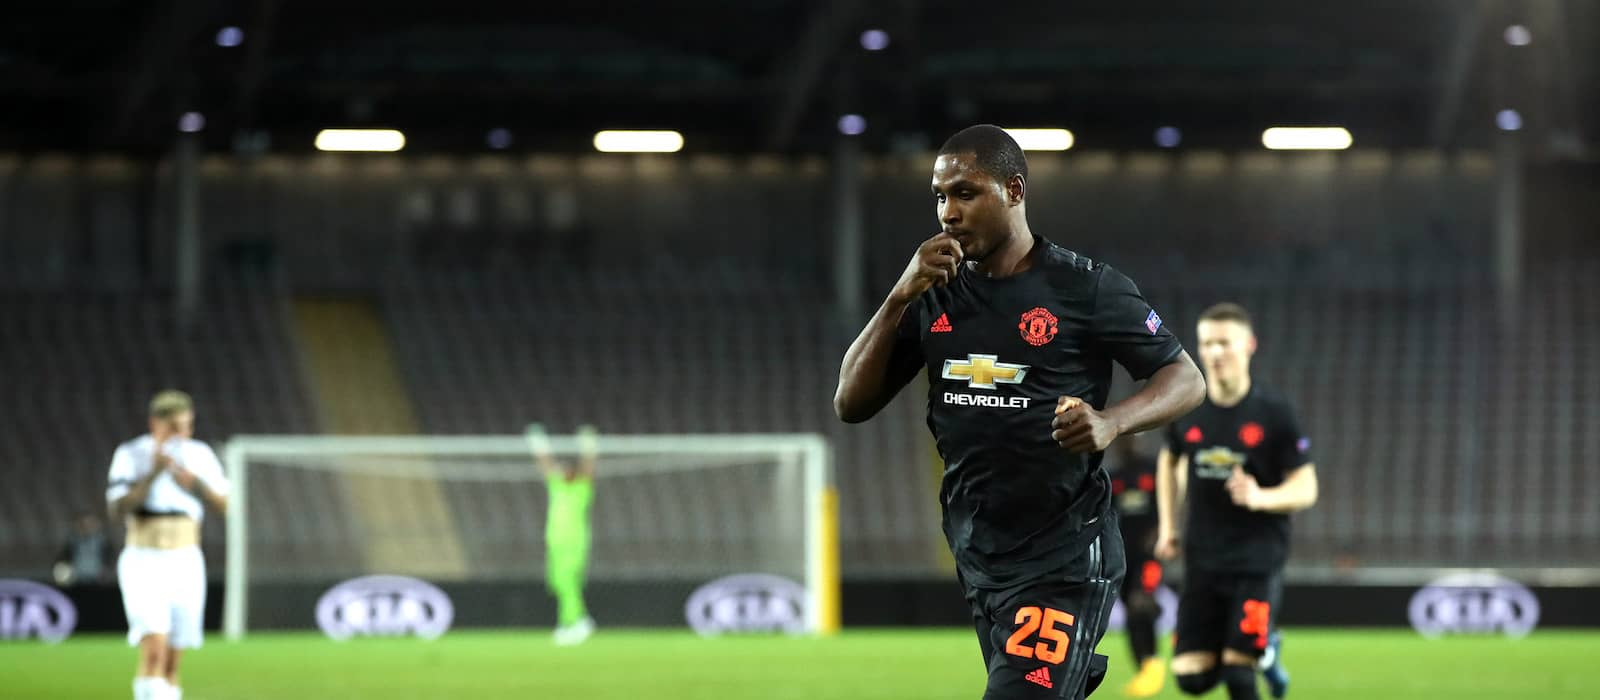 Odion Ighalo in talks with PSG, player's camp confirms